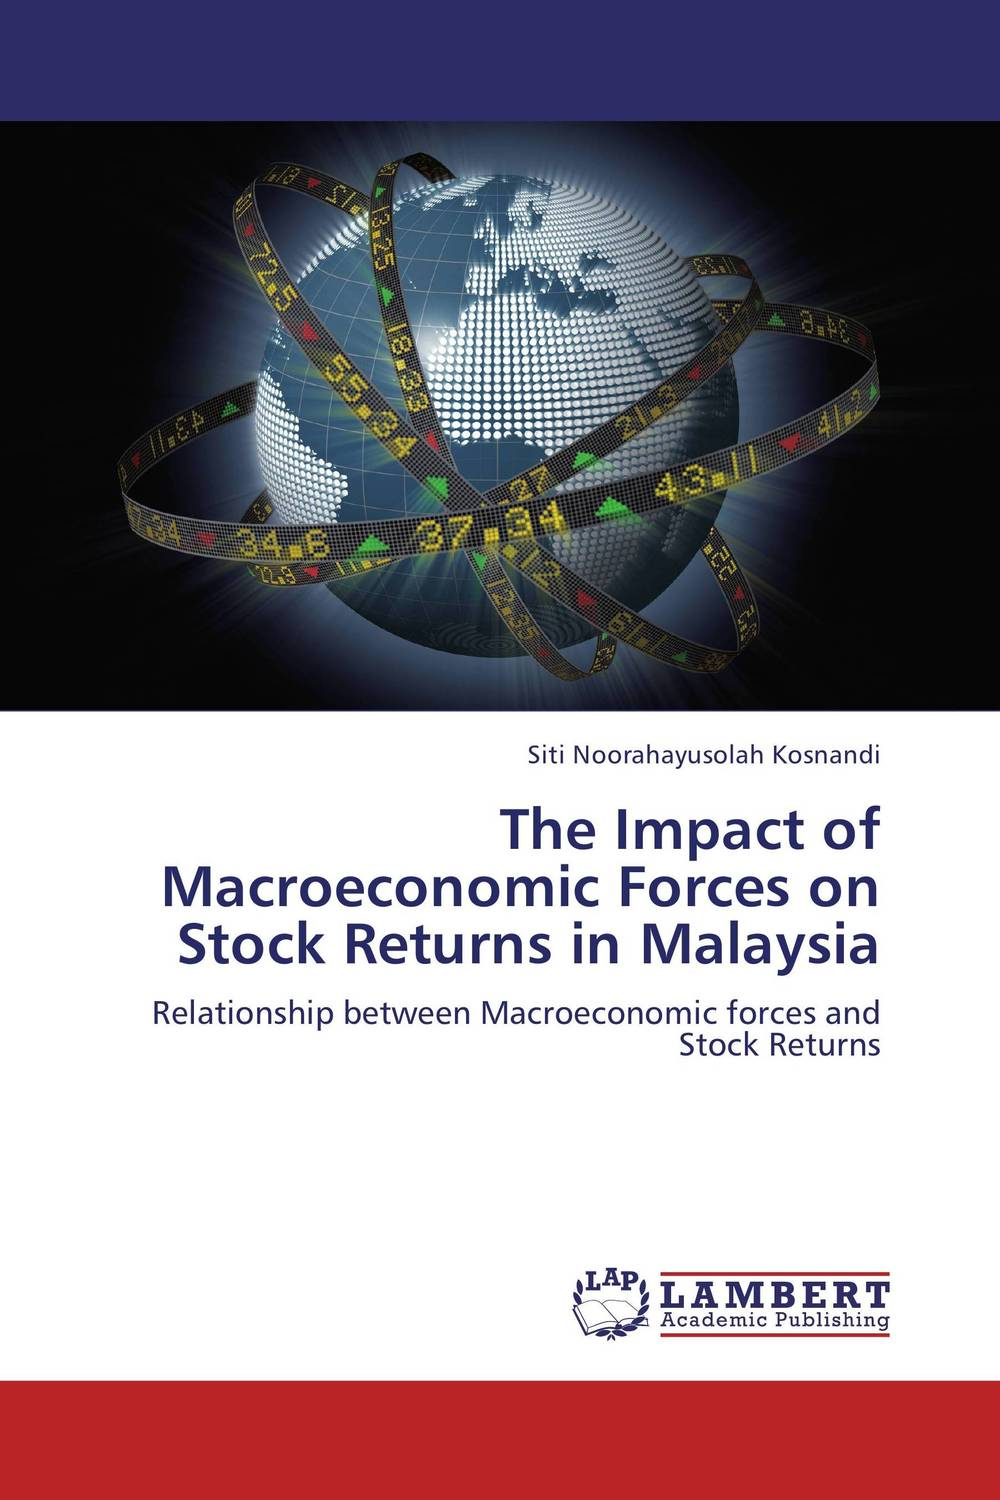 The Impact of Macroeconomic Forces on Stock Returns in Malaysia economizer forces heat transmission from liquid to vapour effectively and keep pressure drop down to a reasonable level